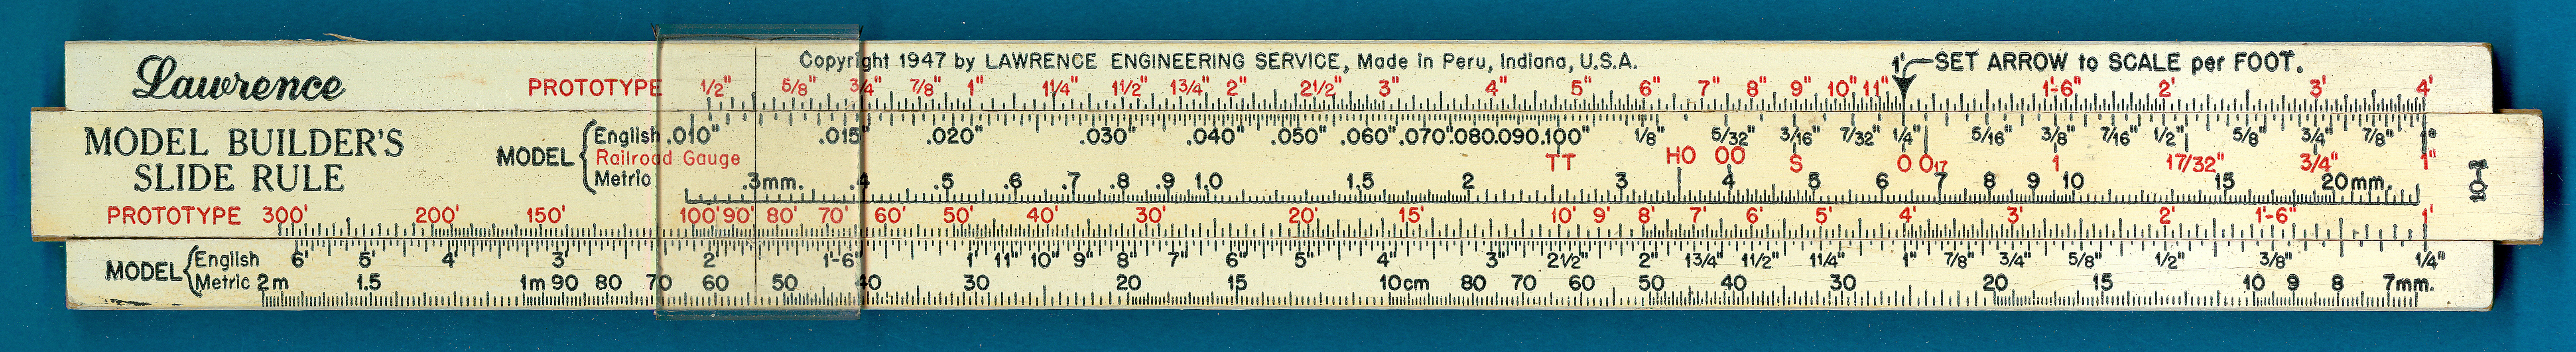 Lawrence Engineering Services 10-I